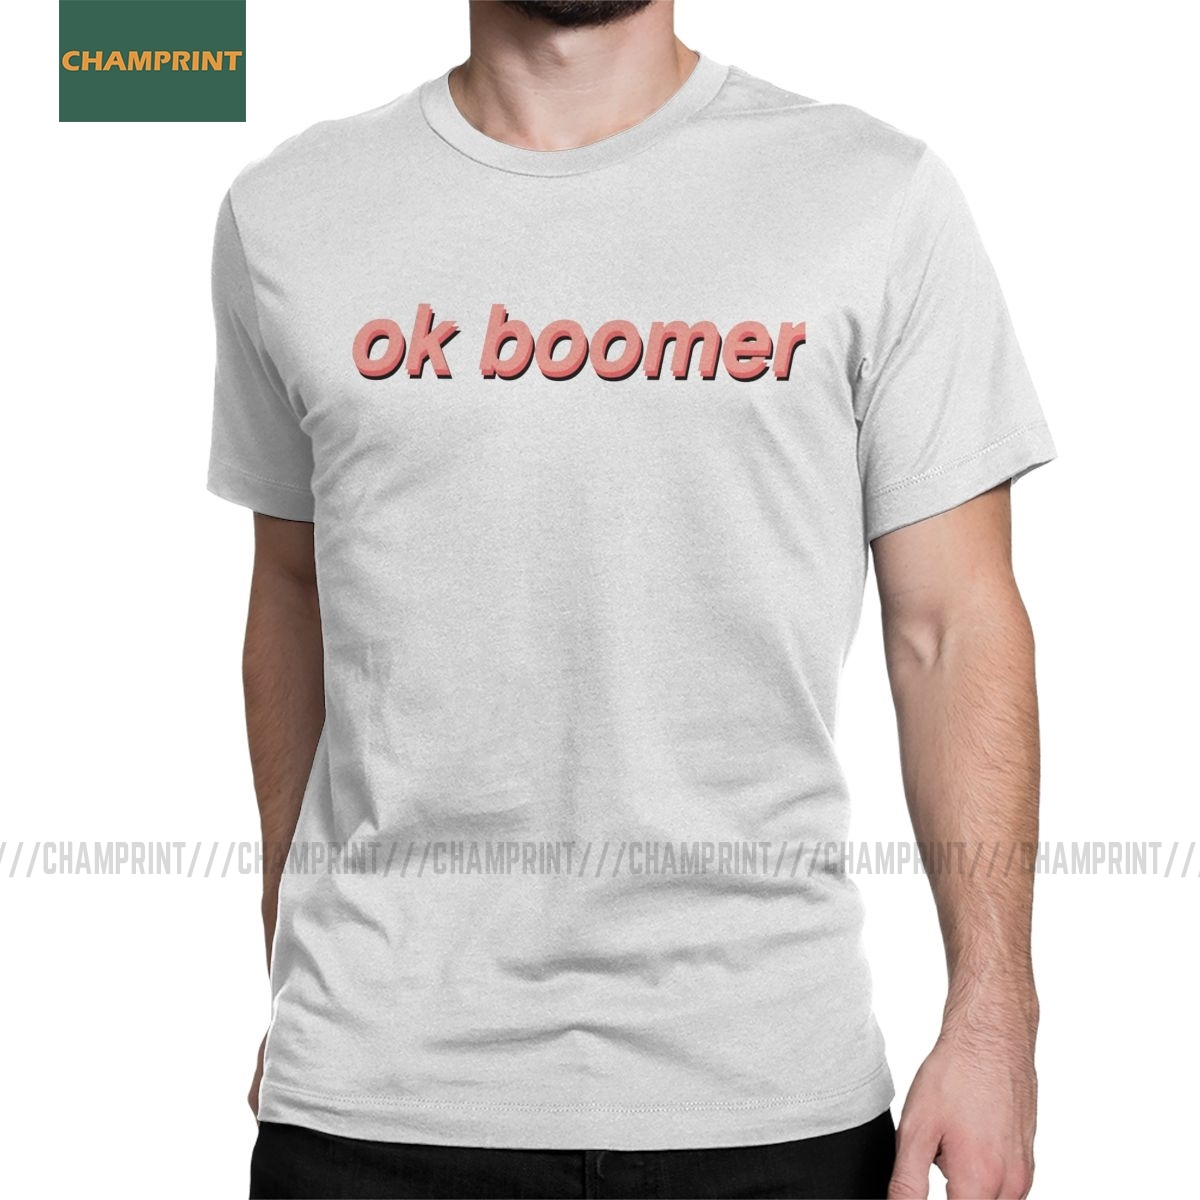 Men's OK Boomer T Shirts Quote Generation Z Okay Meme 100% Cotton Clothes Funny Short Sleeve Tee Shirt Birthday Gift T-Shirt image